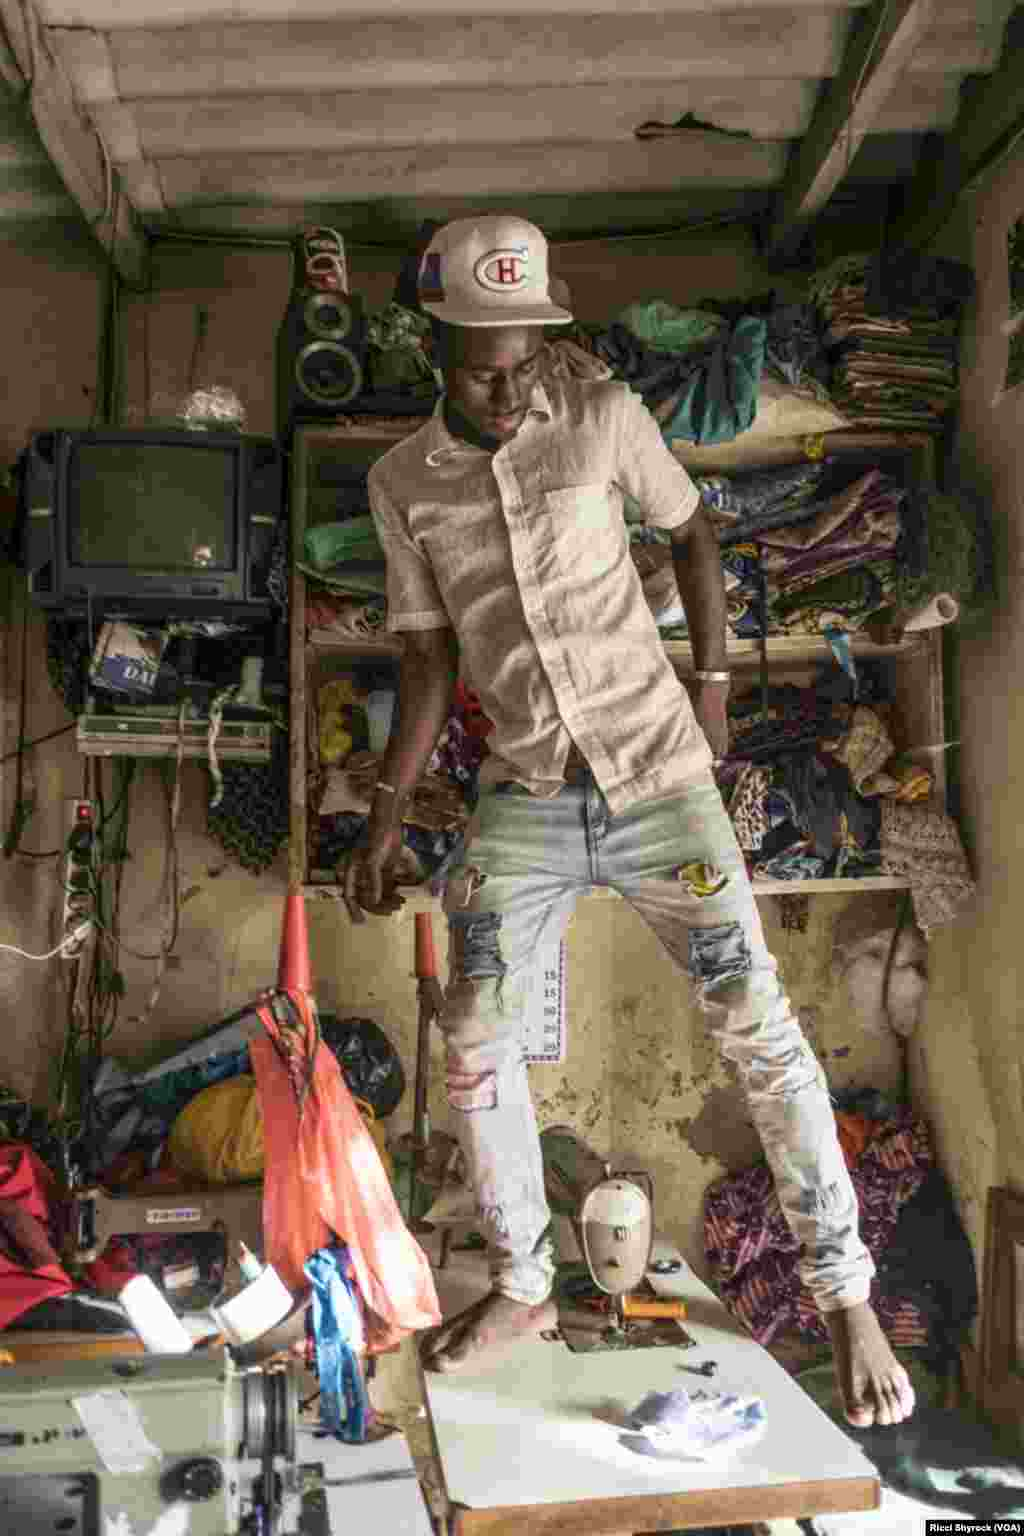 """A tailor works in Dakar's Niary Tally neighborhood, the working class area where Dakar Fashion Week held their """"Street Parade"""" fashion show this year, June 29, 2017. The show is free and takes place in an open and public area each year as part of Dakar Fashion Week's events."""